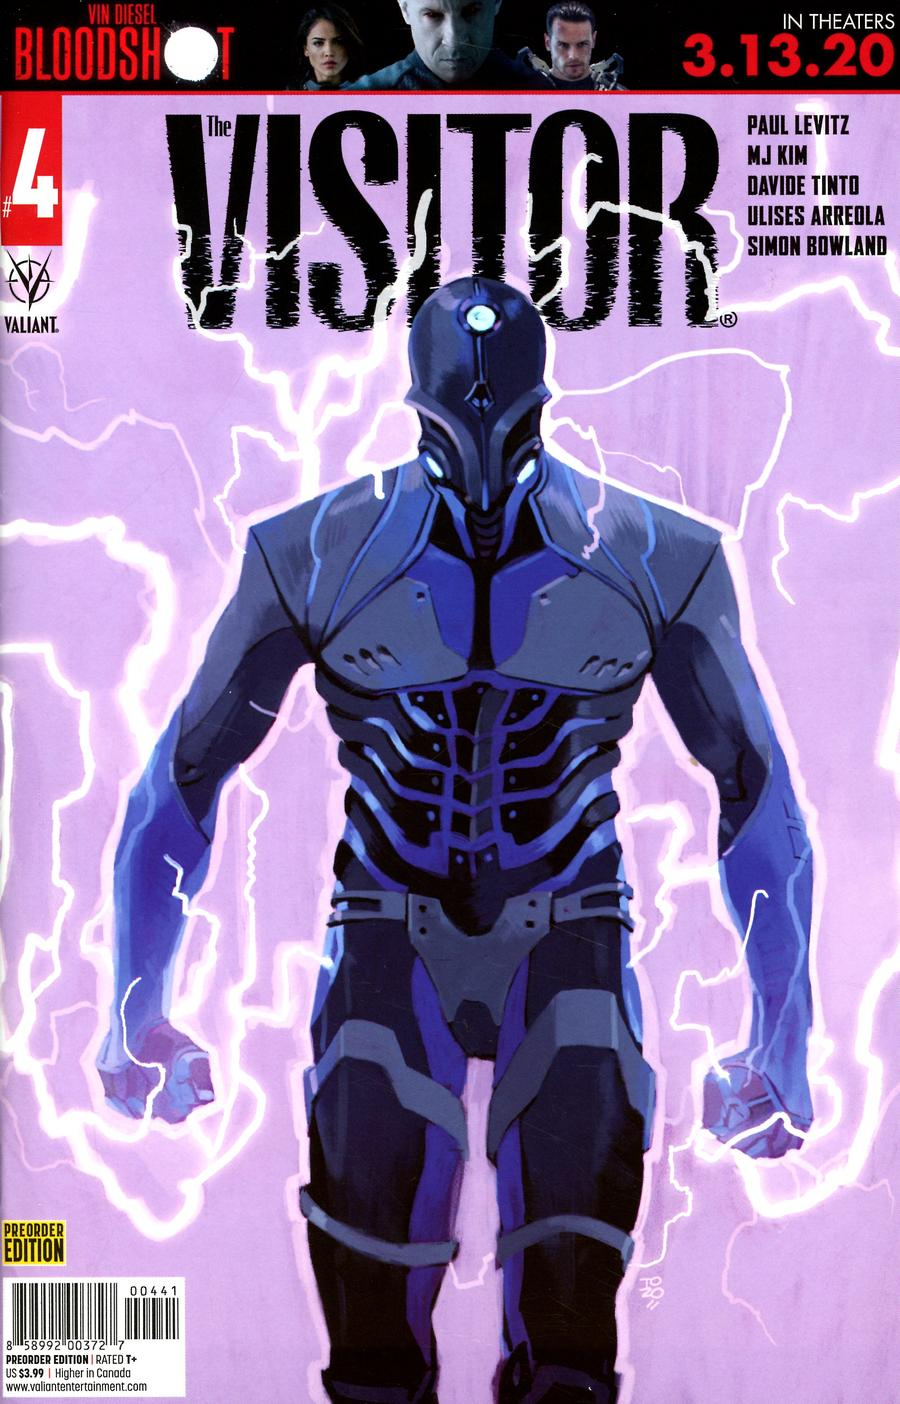 Visitor Vol 2 #4 Cover D Variant Pre-Order Edition